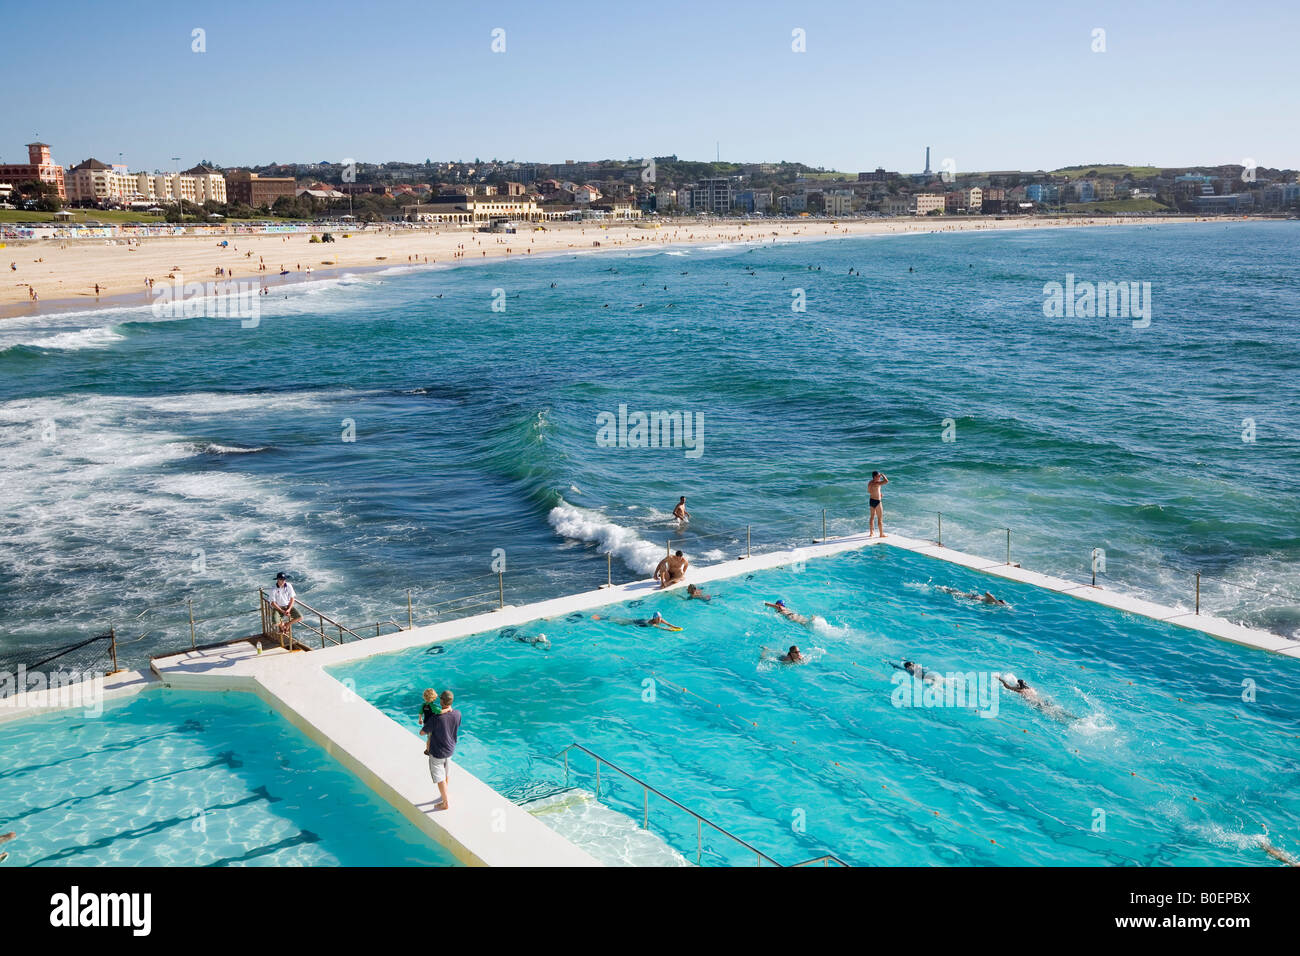 Bondi baths swimming pool sydney new south wales australia stock photo royalty free image for North wales hotels with swimming pools